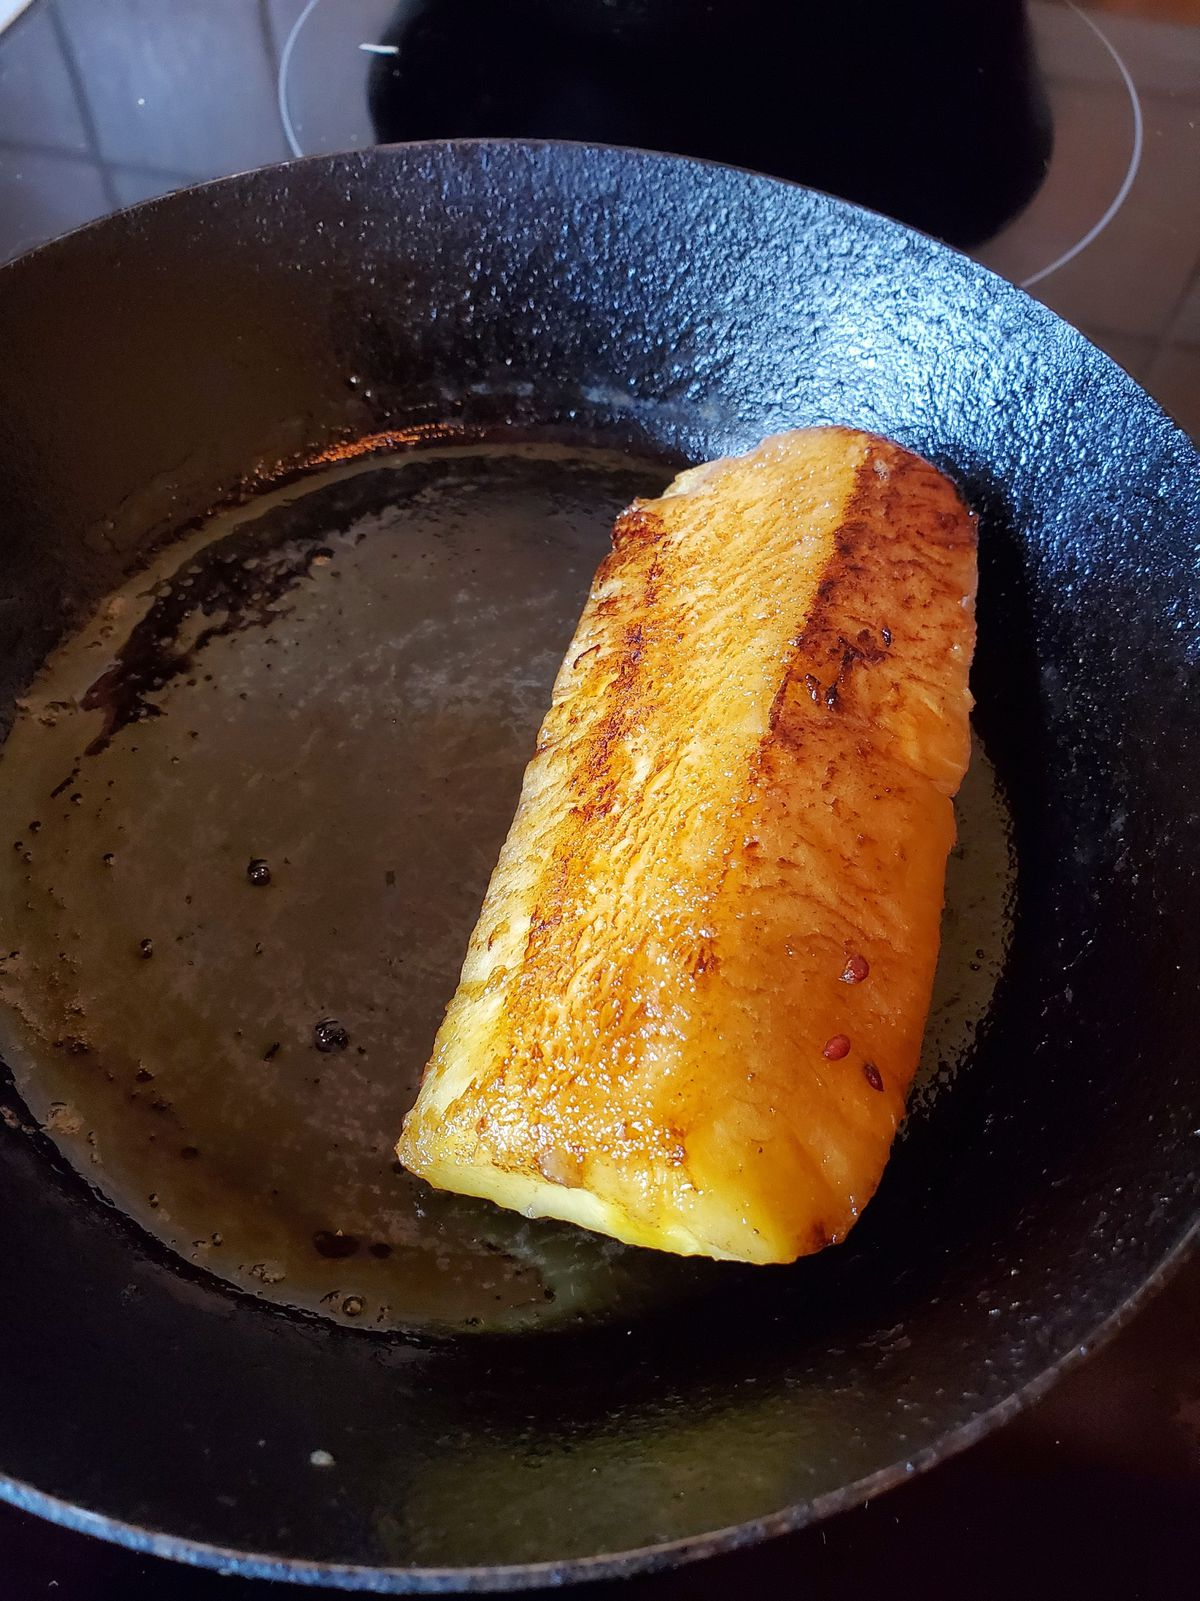 Caramelised hot pineapple in the pan